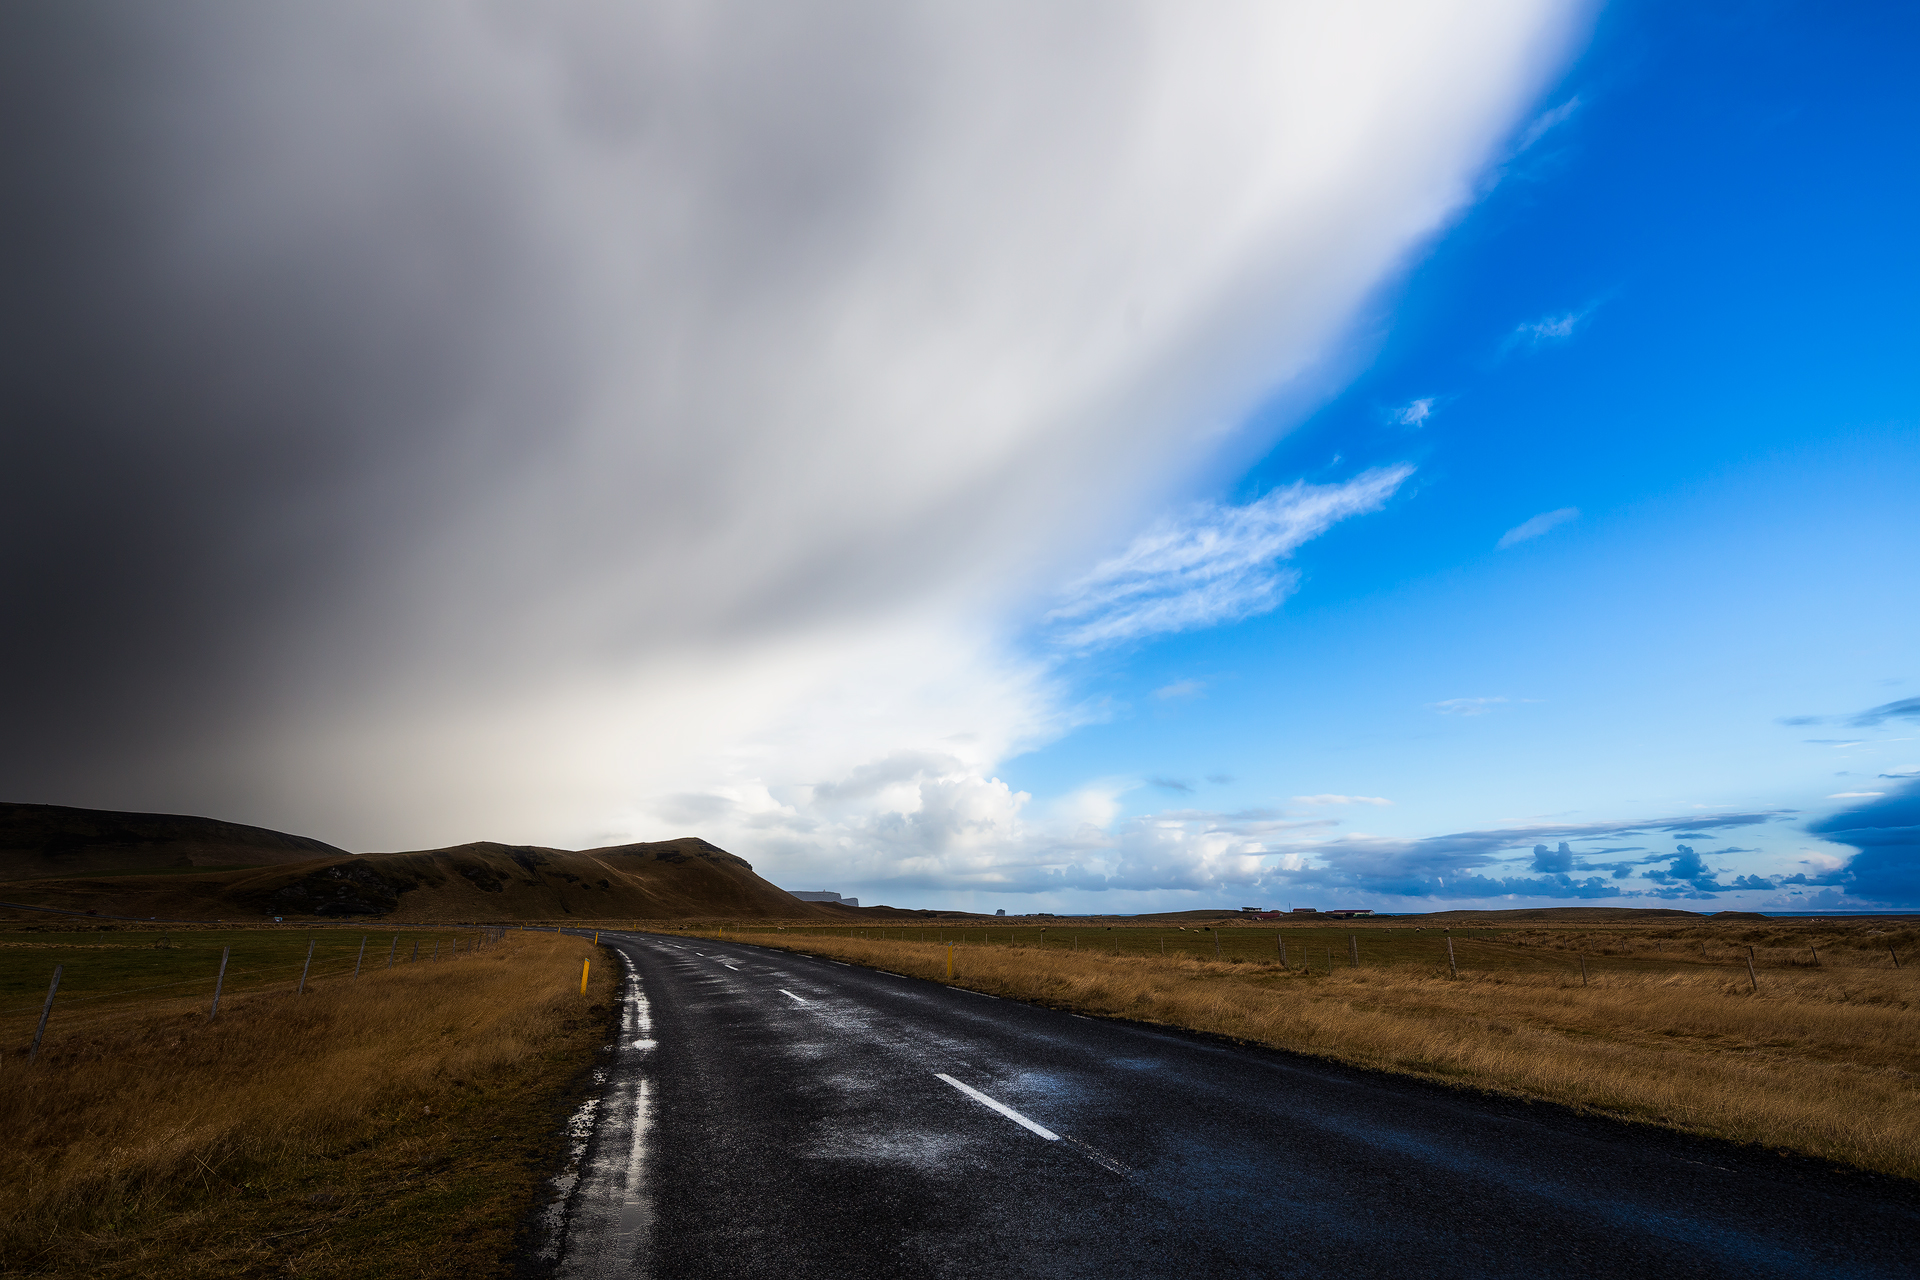 Andrei Duman Storm Clouds, Iceland 23